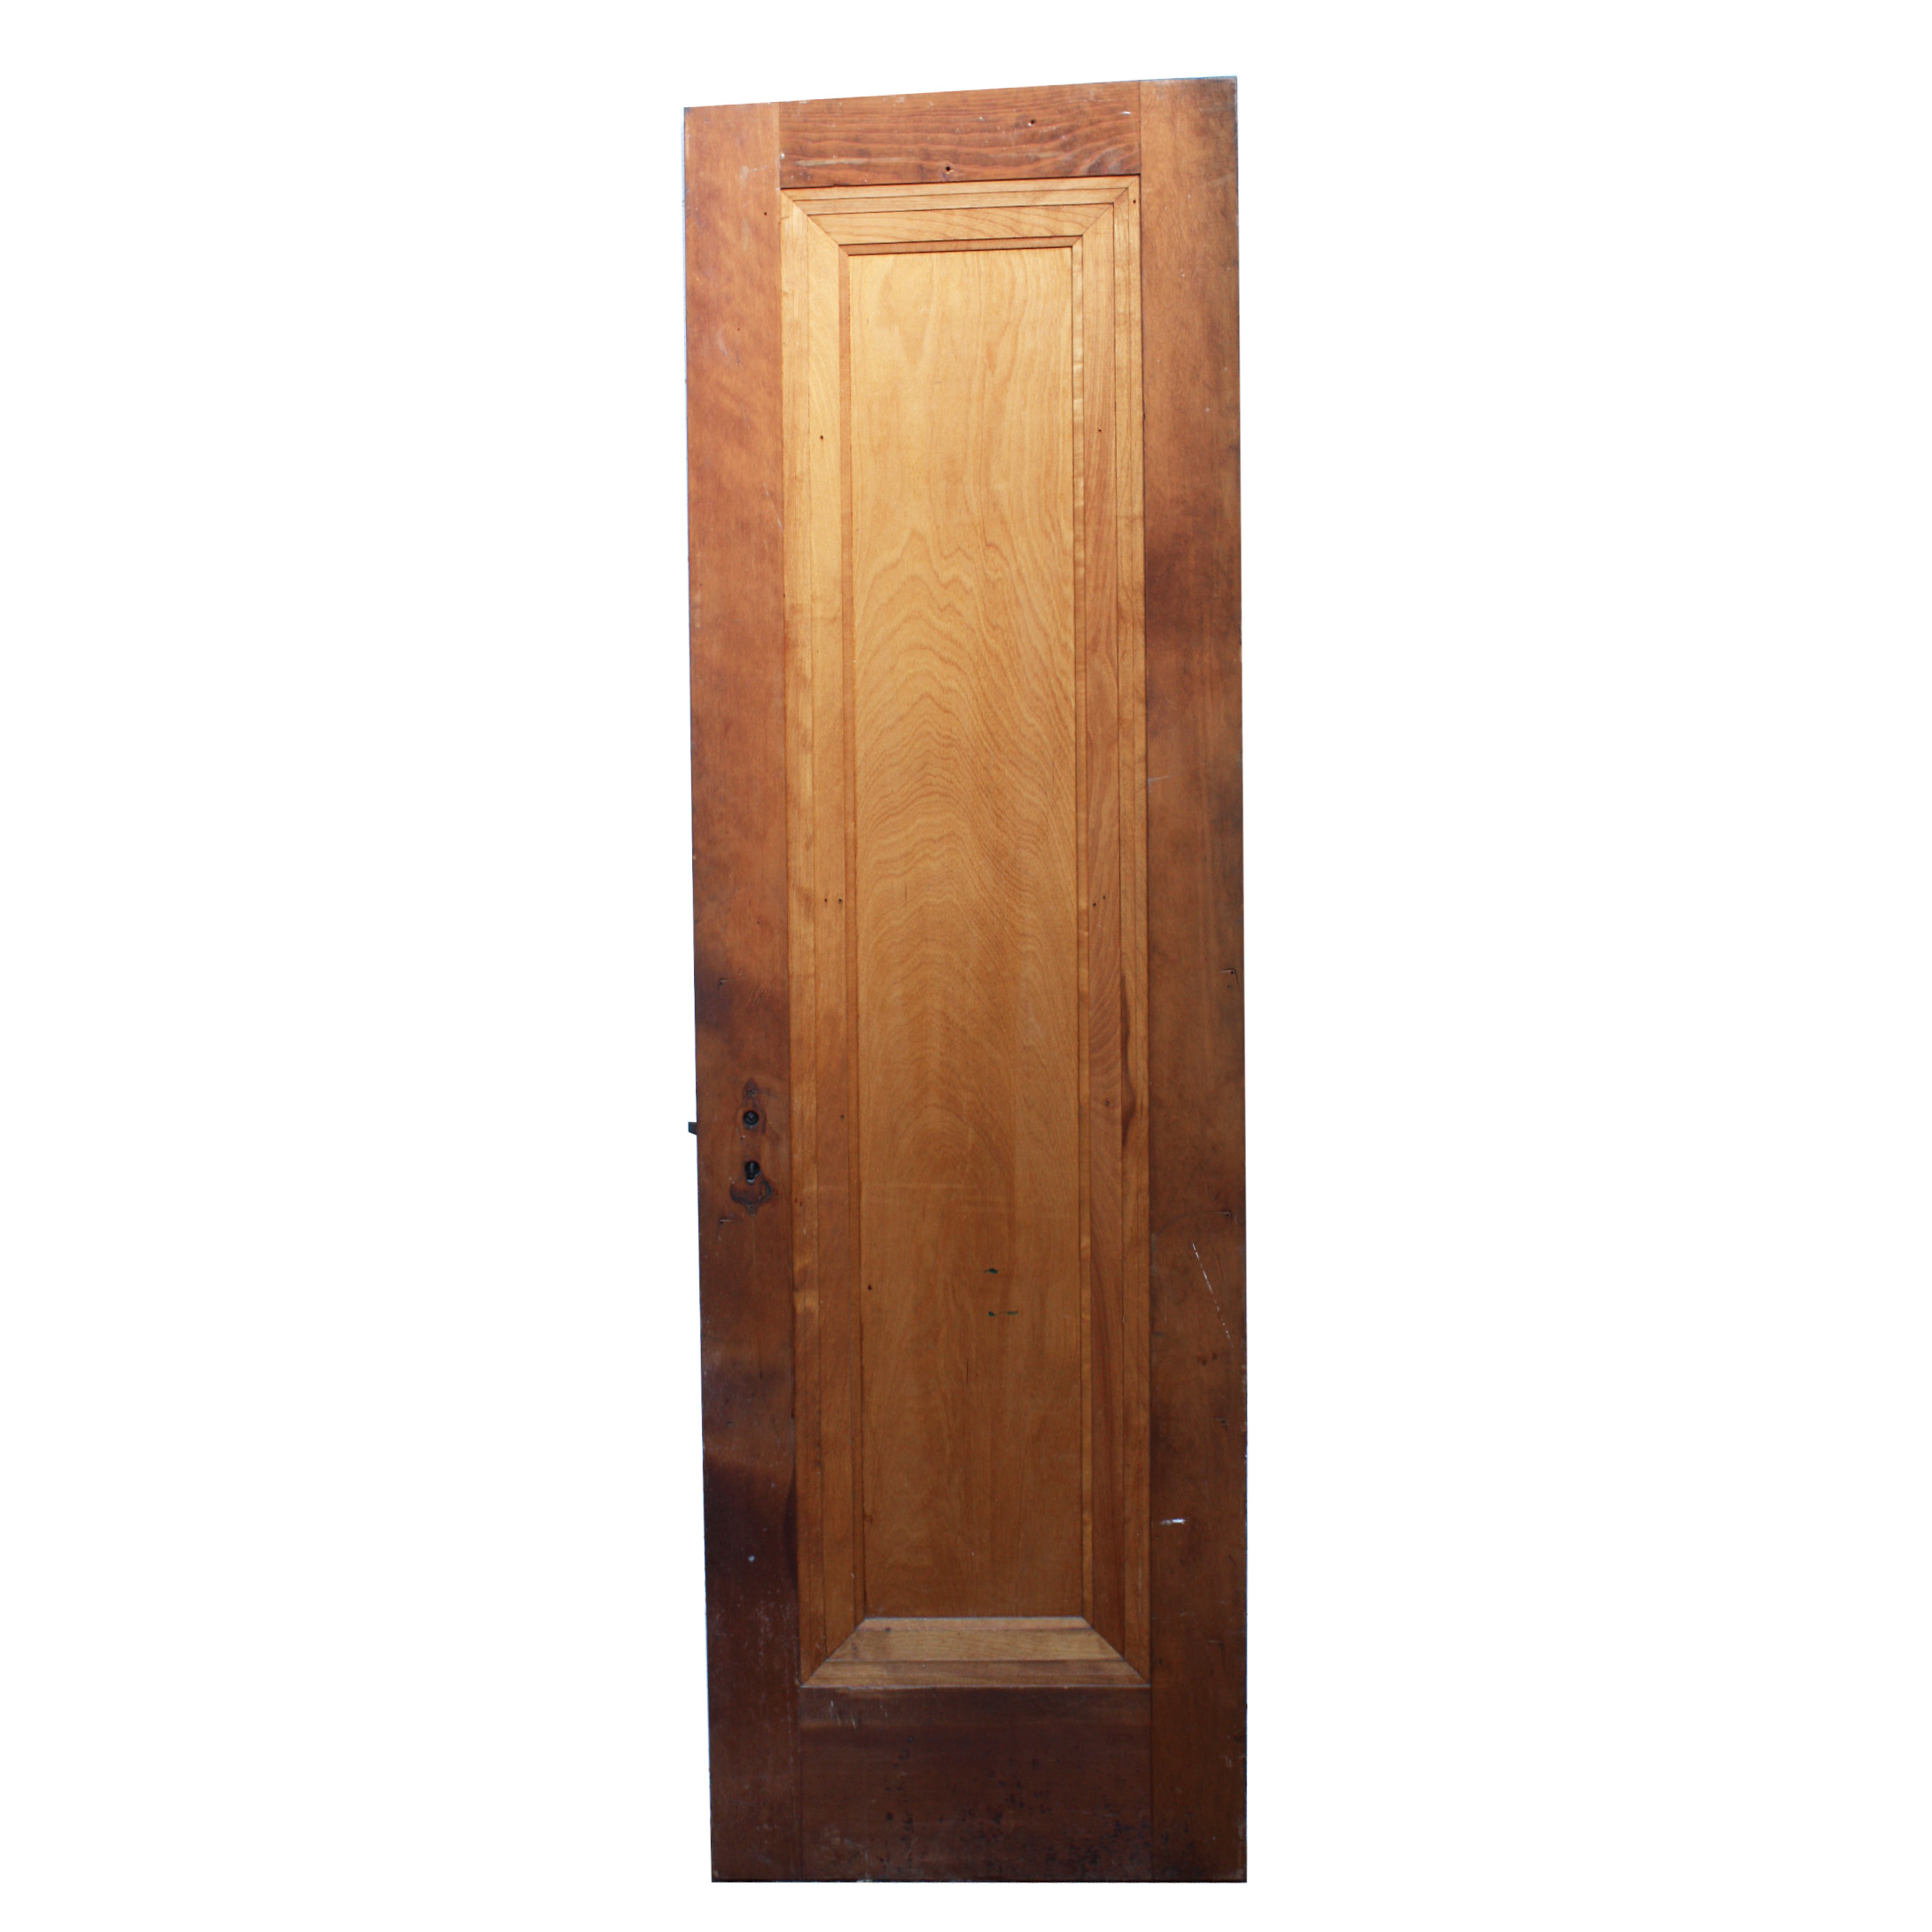 Solid wood interior doors for sale doors interior doors for Solid wood exterior doors for sale